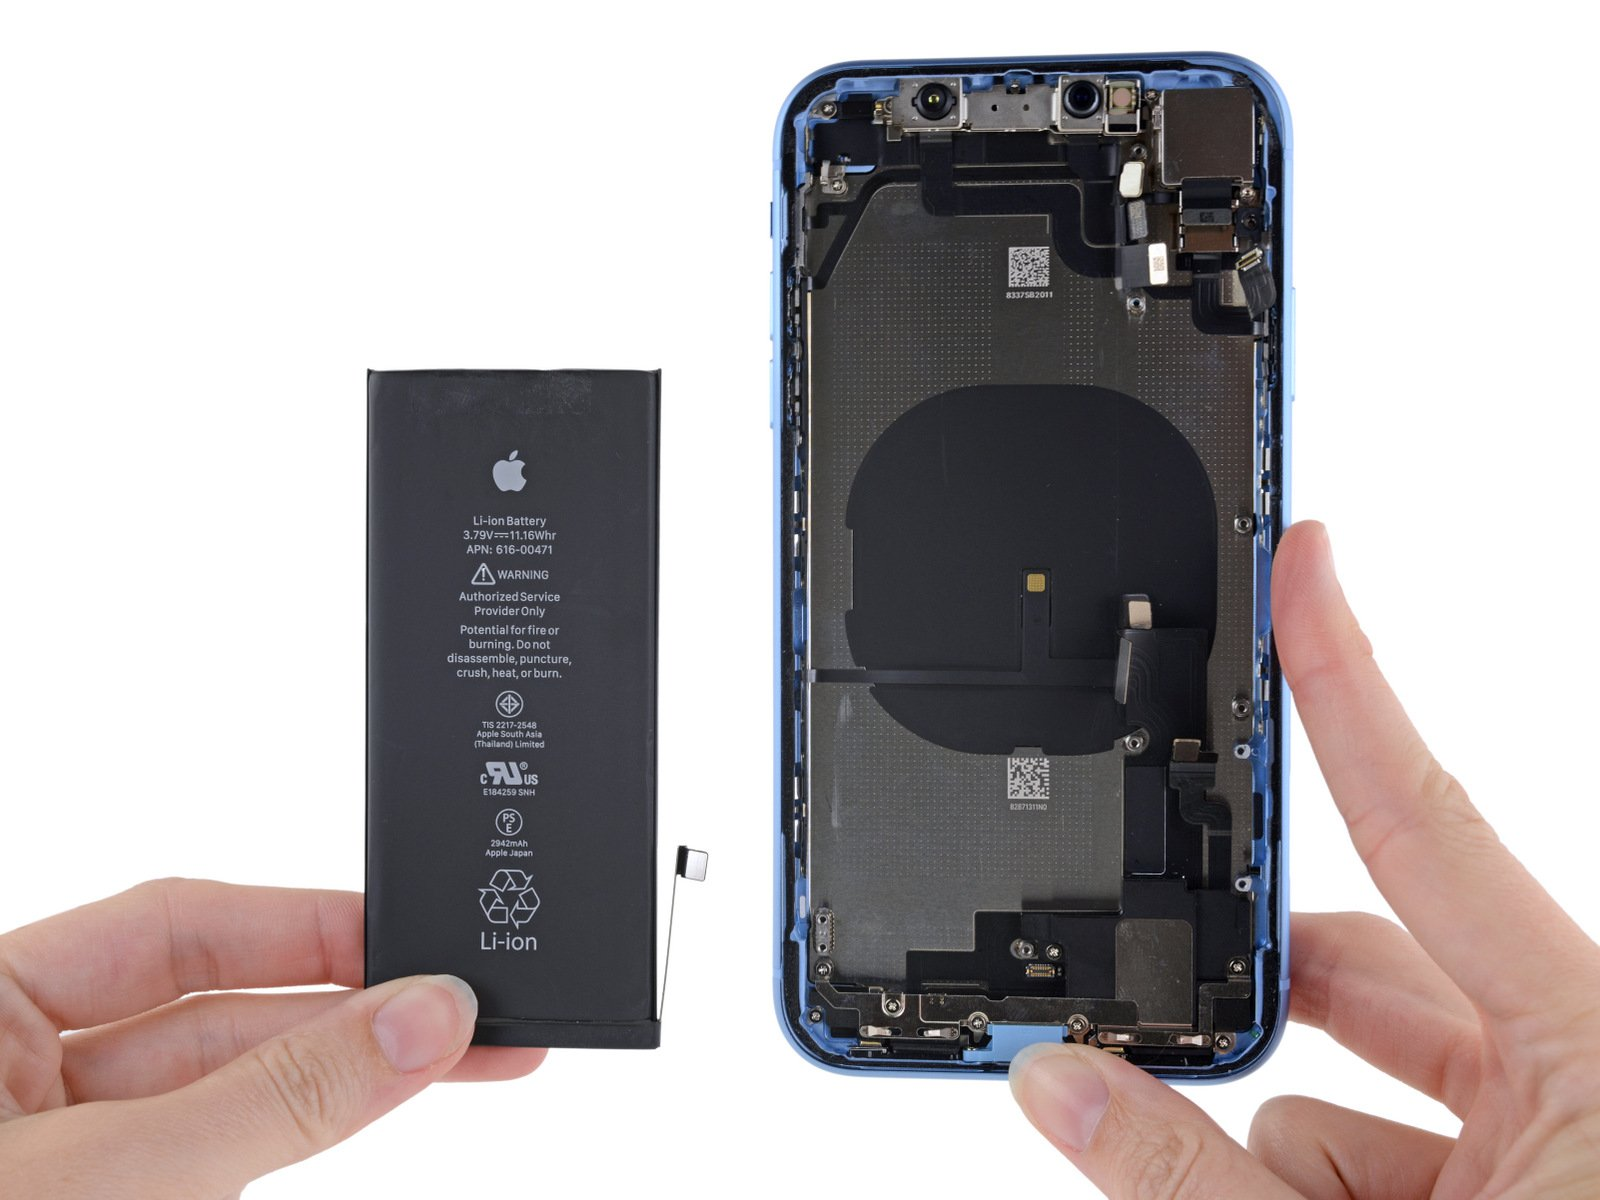 Iphone Xr Guts Reveal Sizzle Of The Xs Without The Excessive